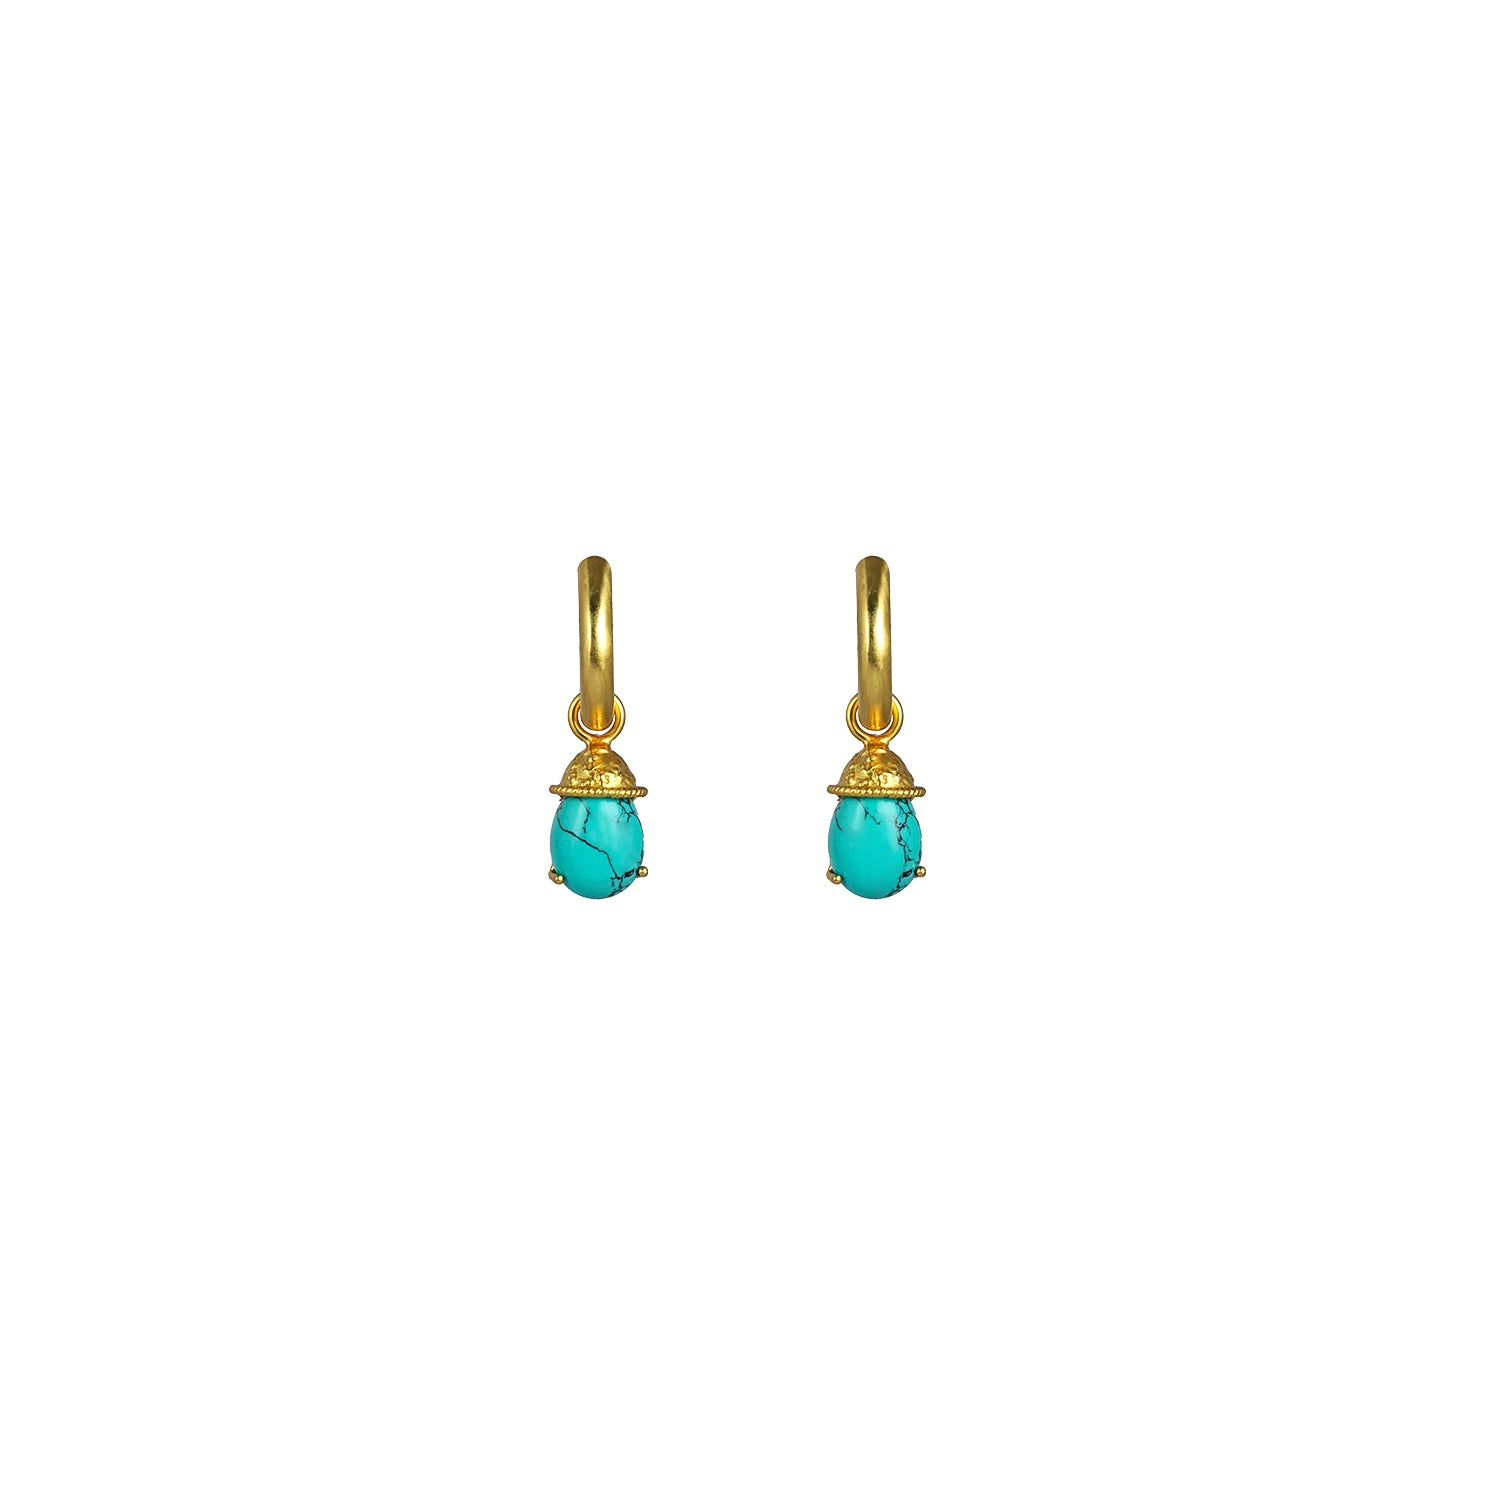 Jewel Earrings Turquoise (2 in 1 with removable charm) PRE ORDER